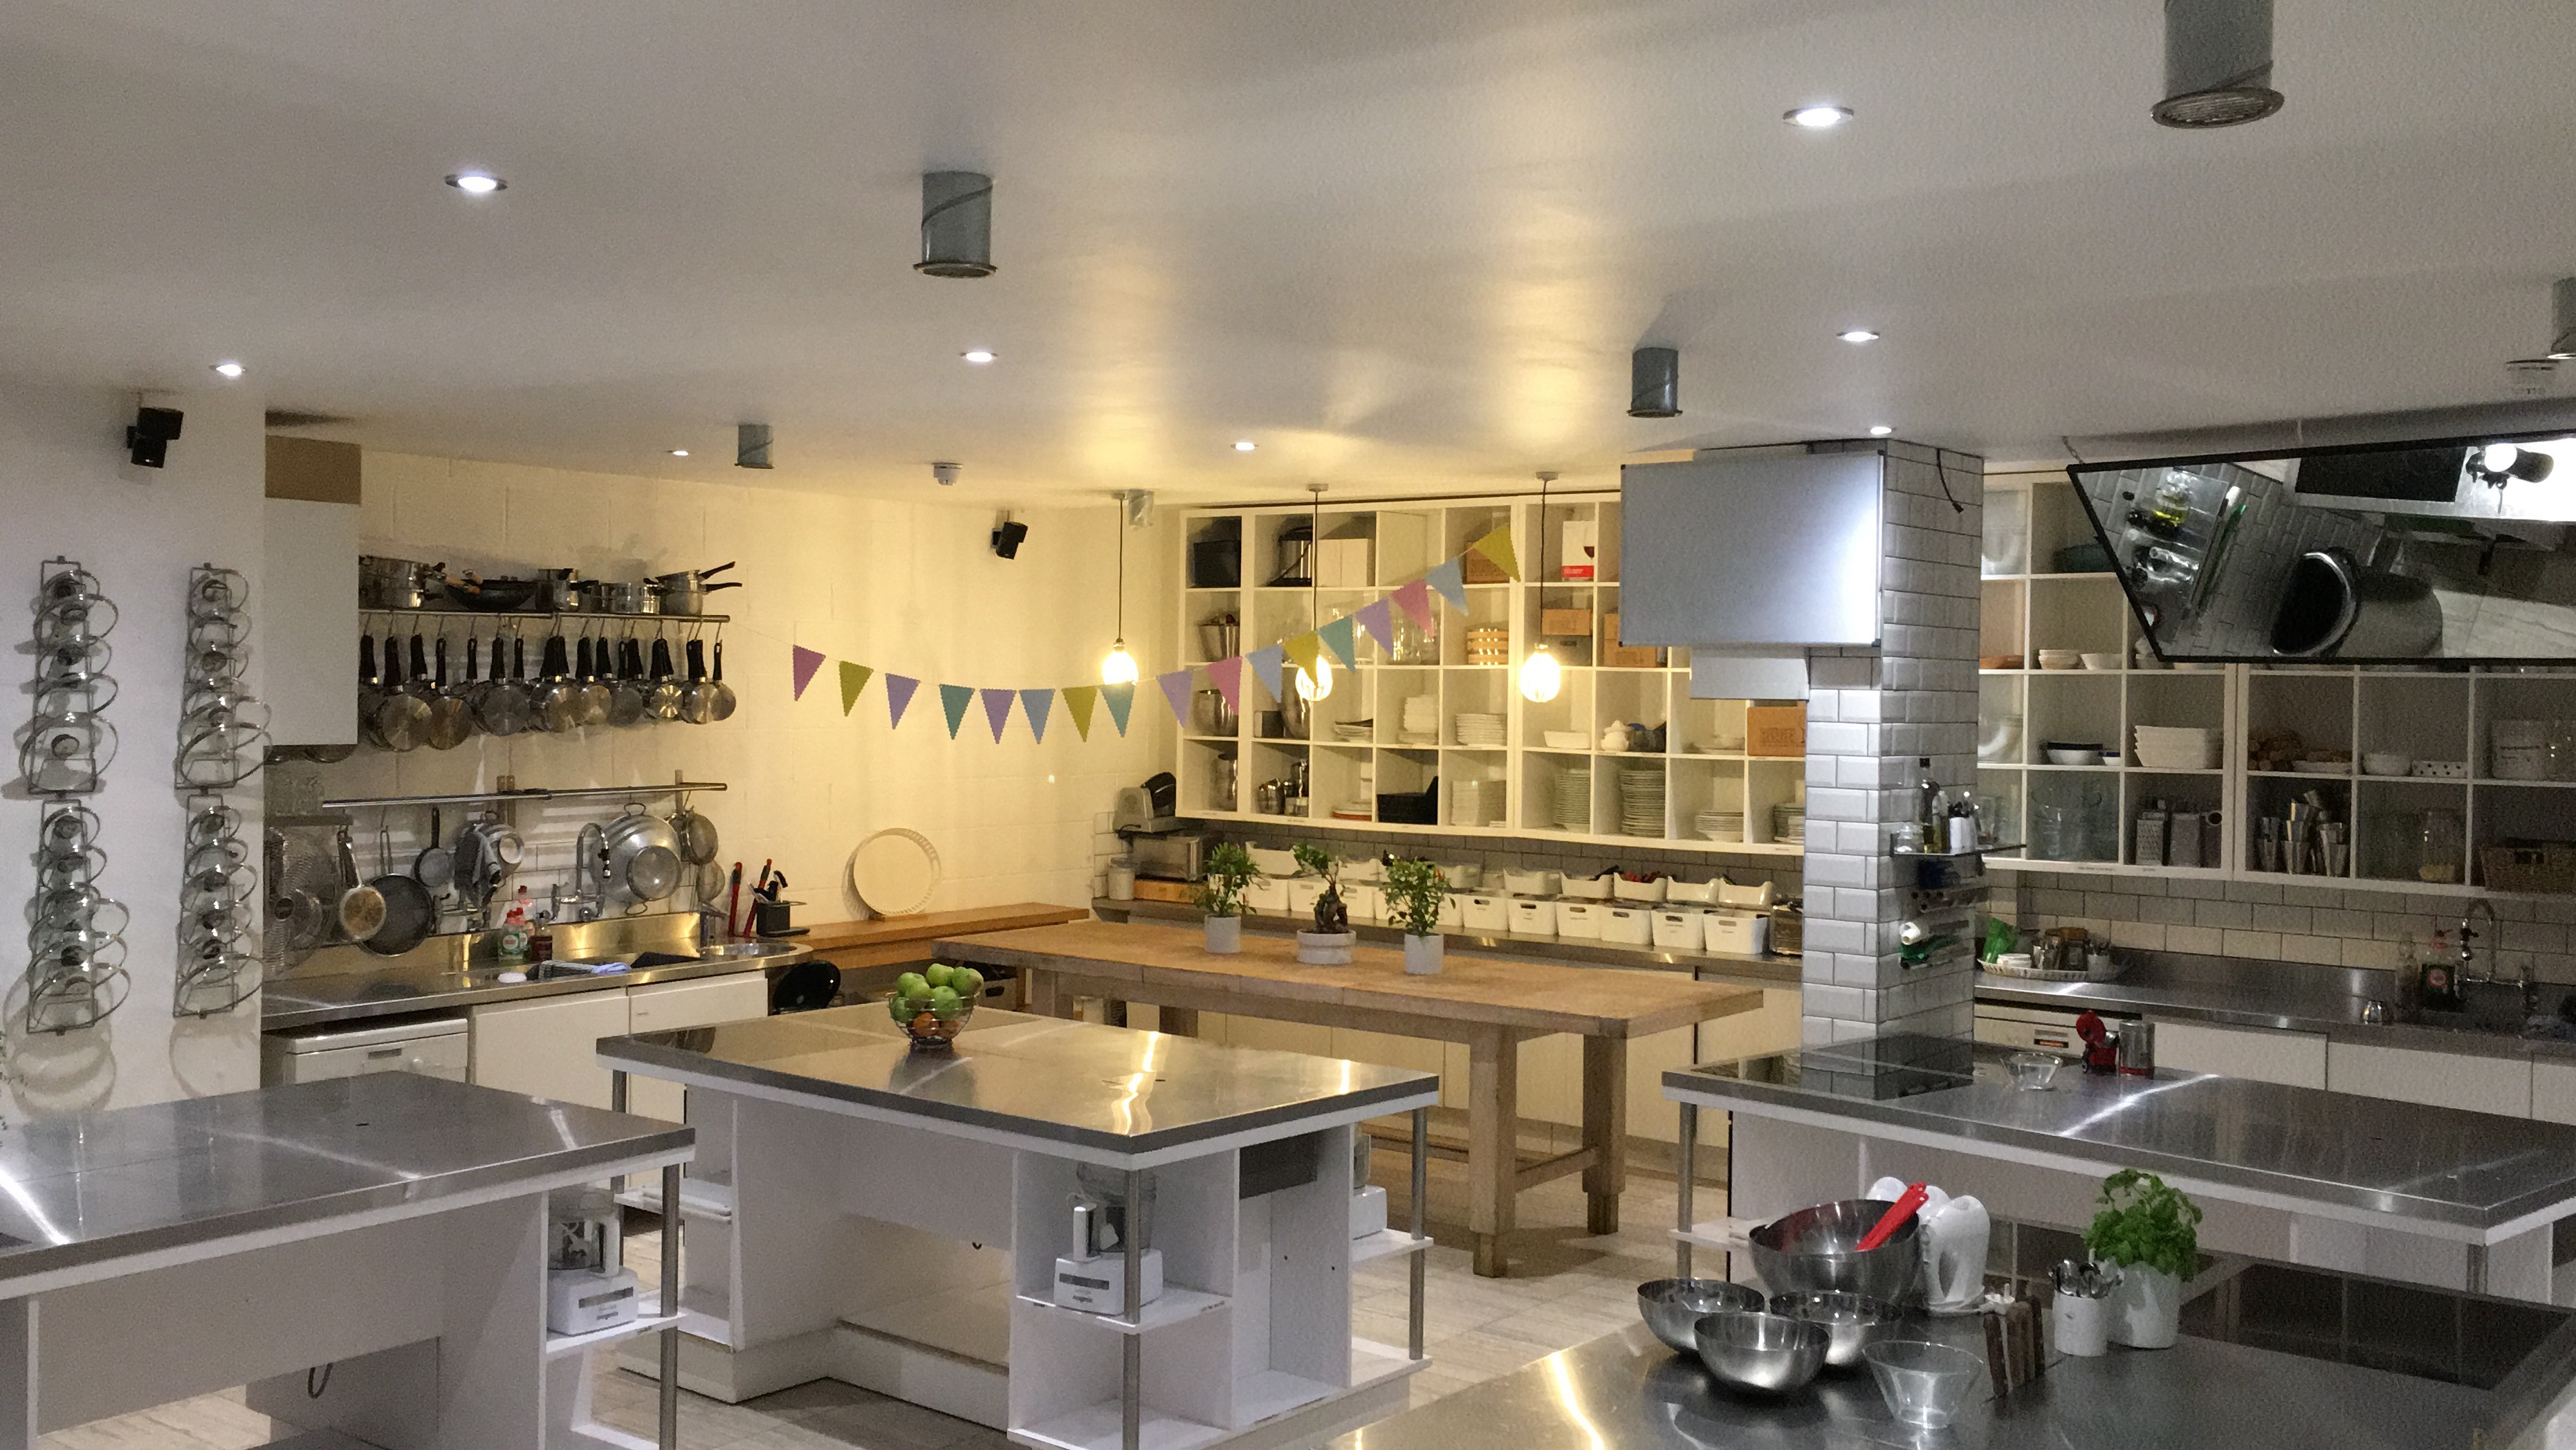 Sweet Sunday Brunch Club Cooking Class by The Avenue Cookery School - food in London